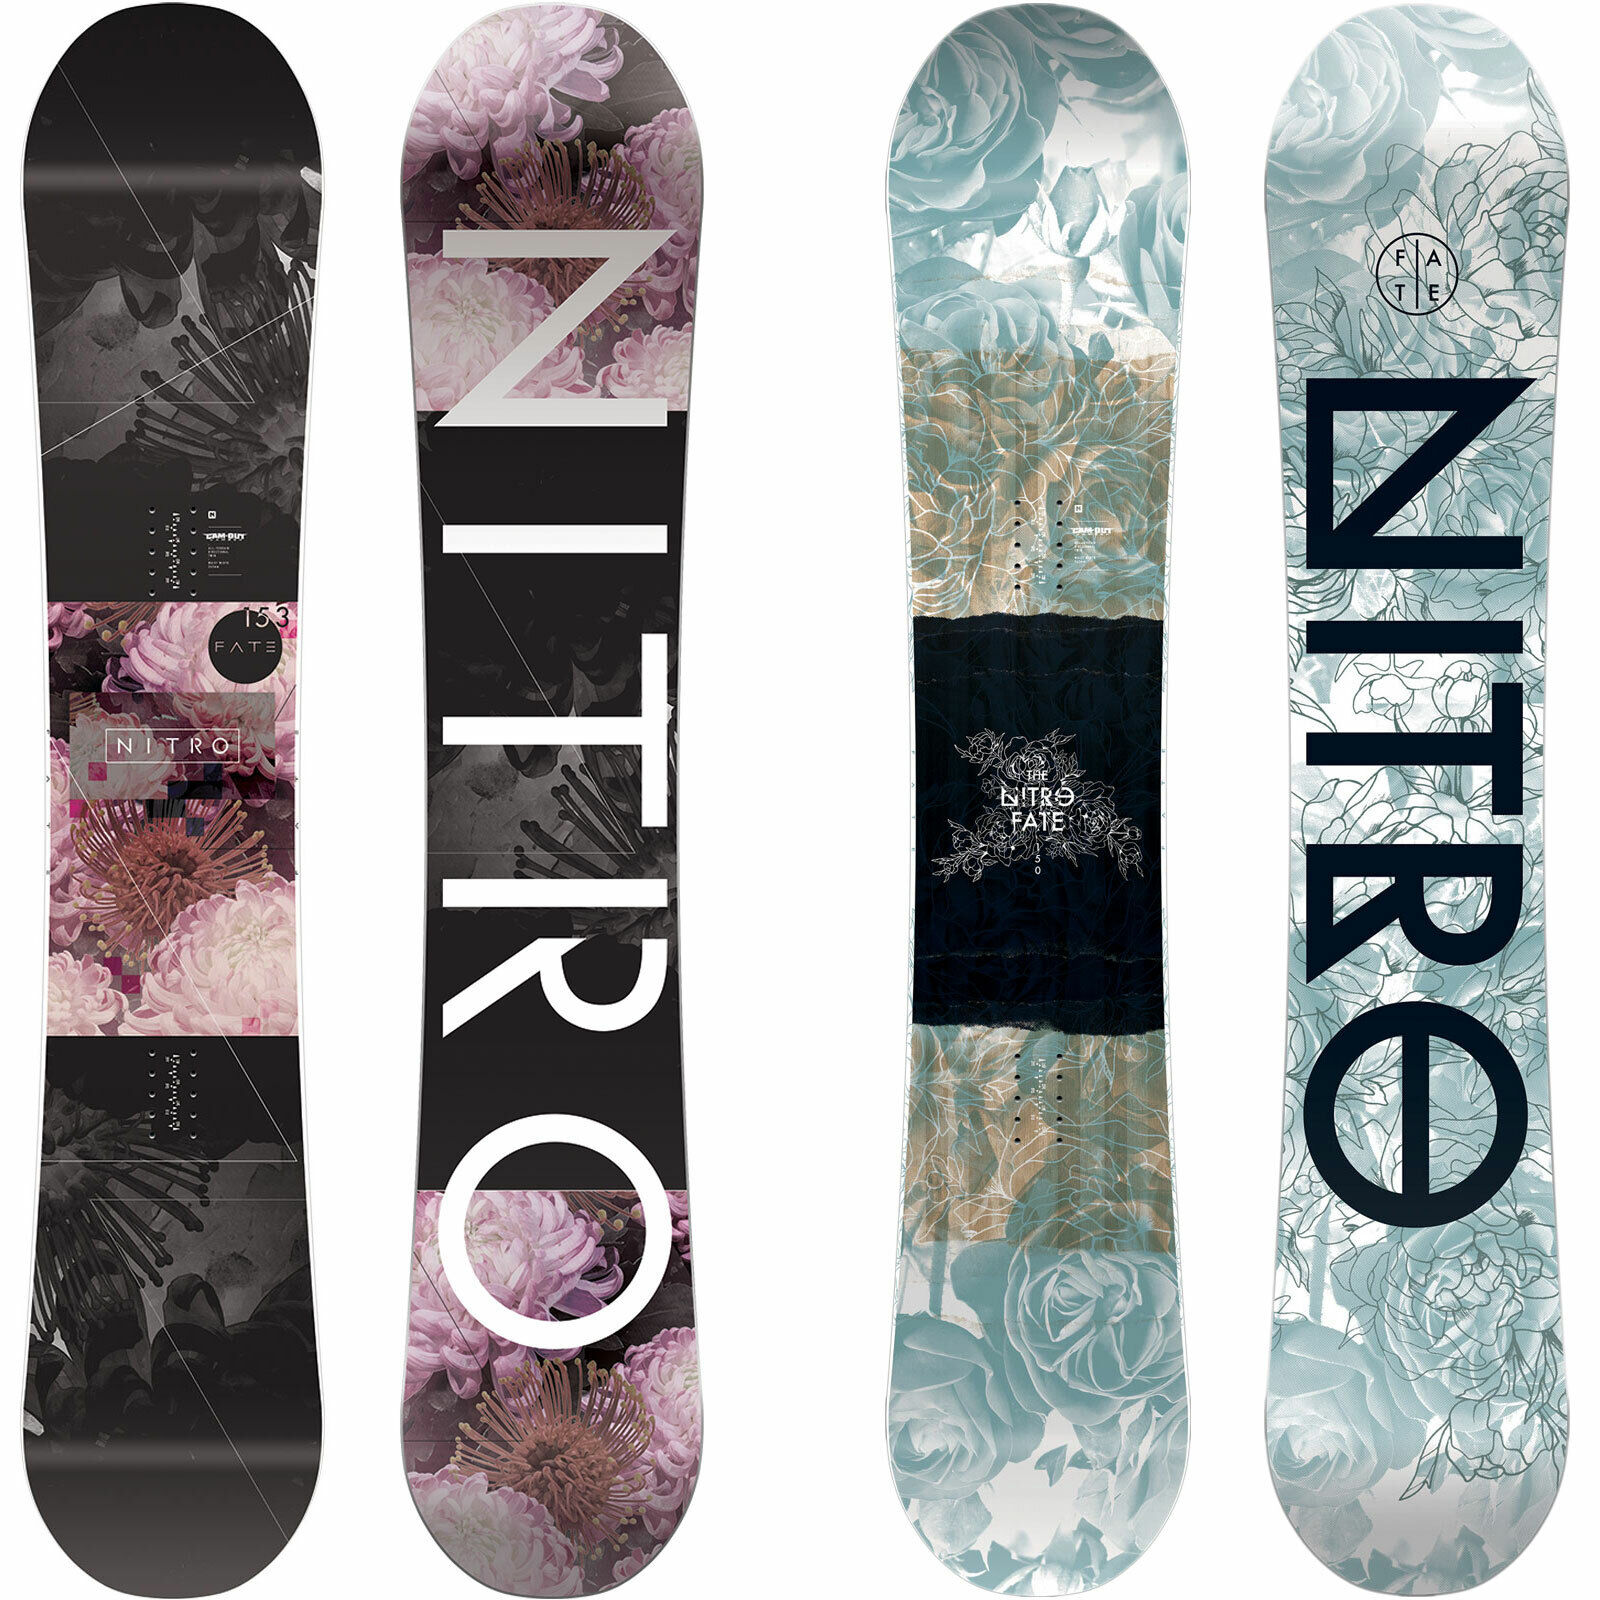 Nitro Fate Womens snowboard All Terrain Freestyle Freeride Camber  2019-2020 NEW  the best online store offer